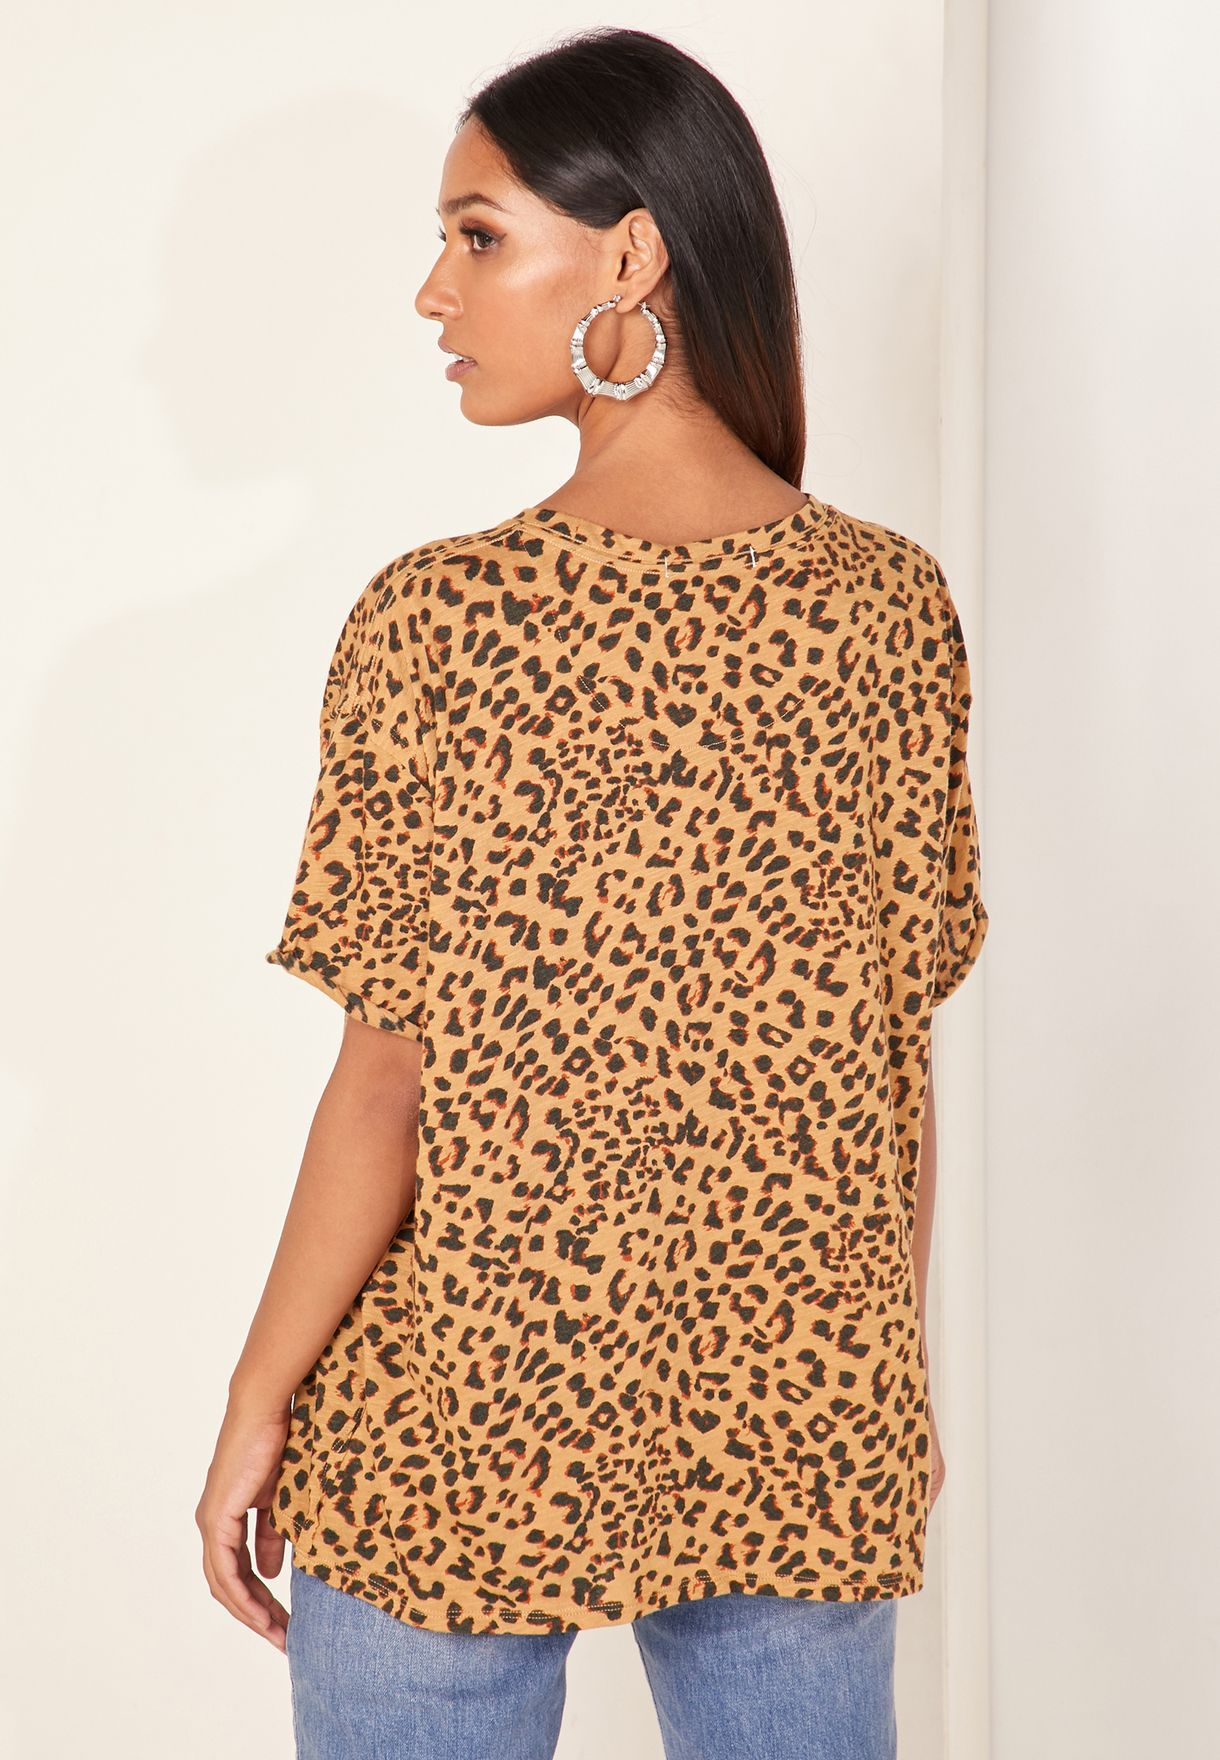 Clarity Animal Print T-Shirt